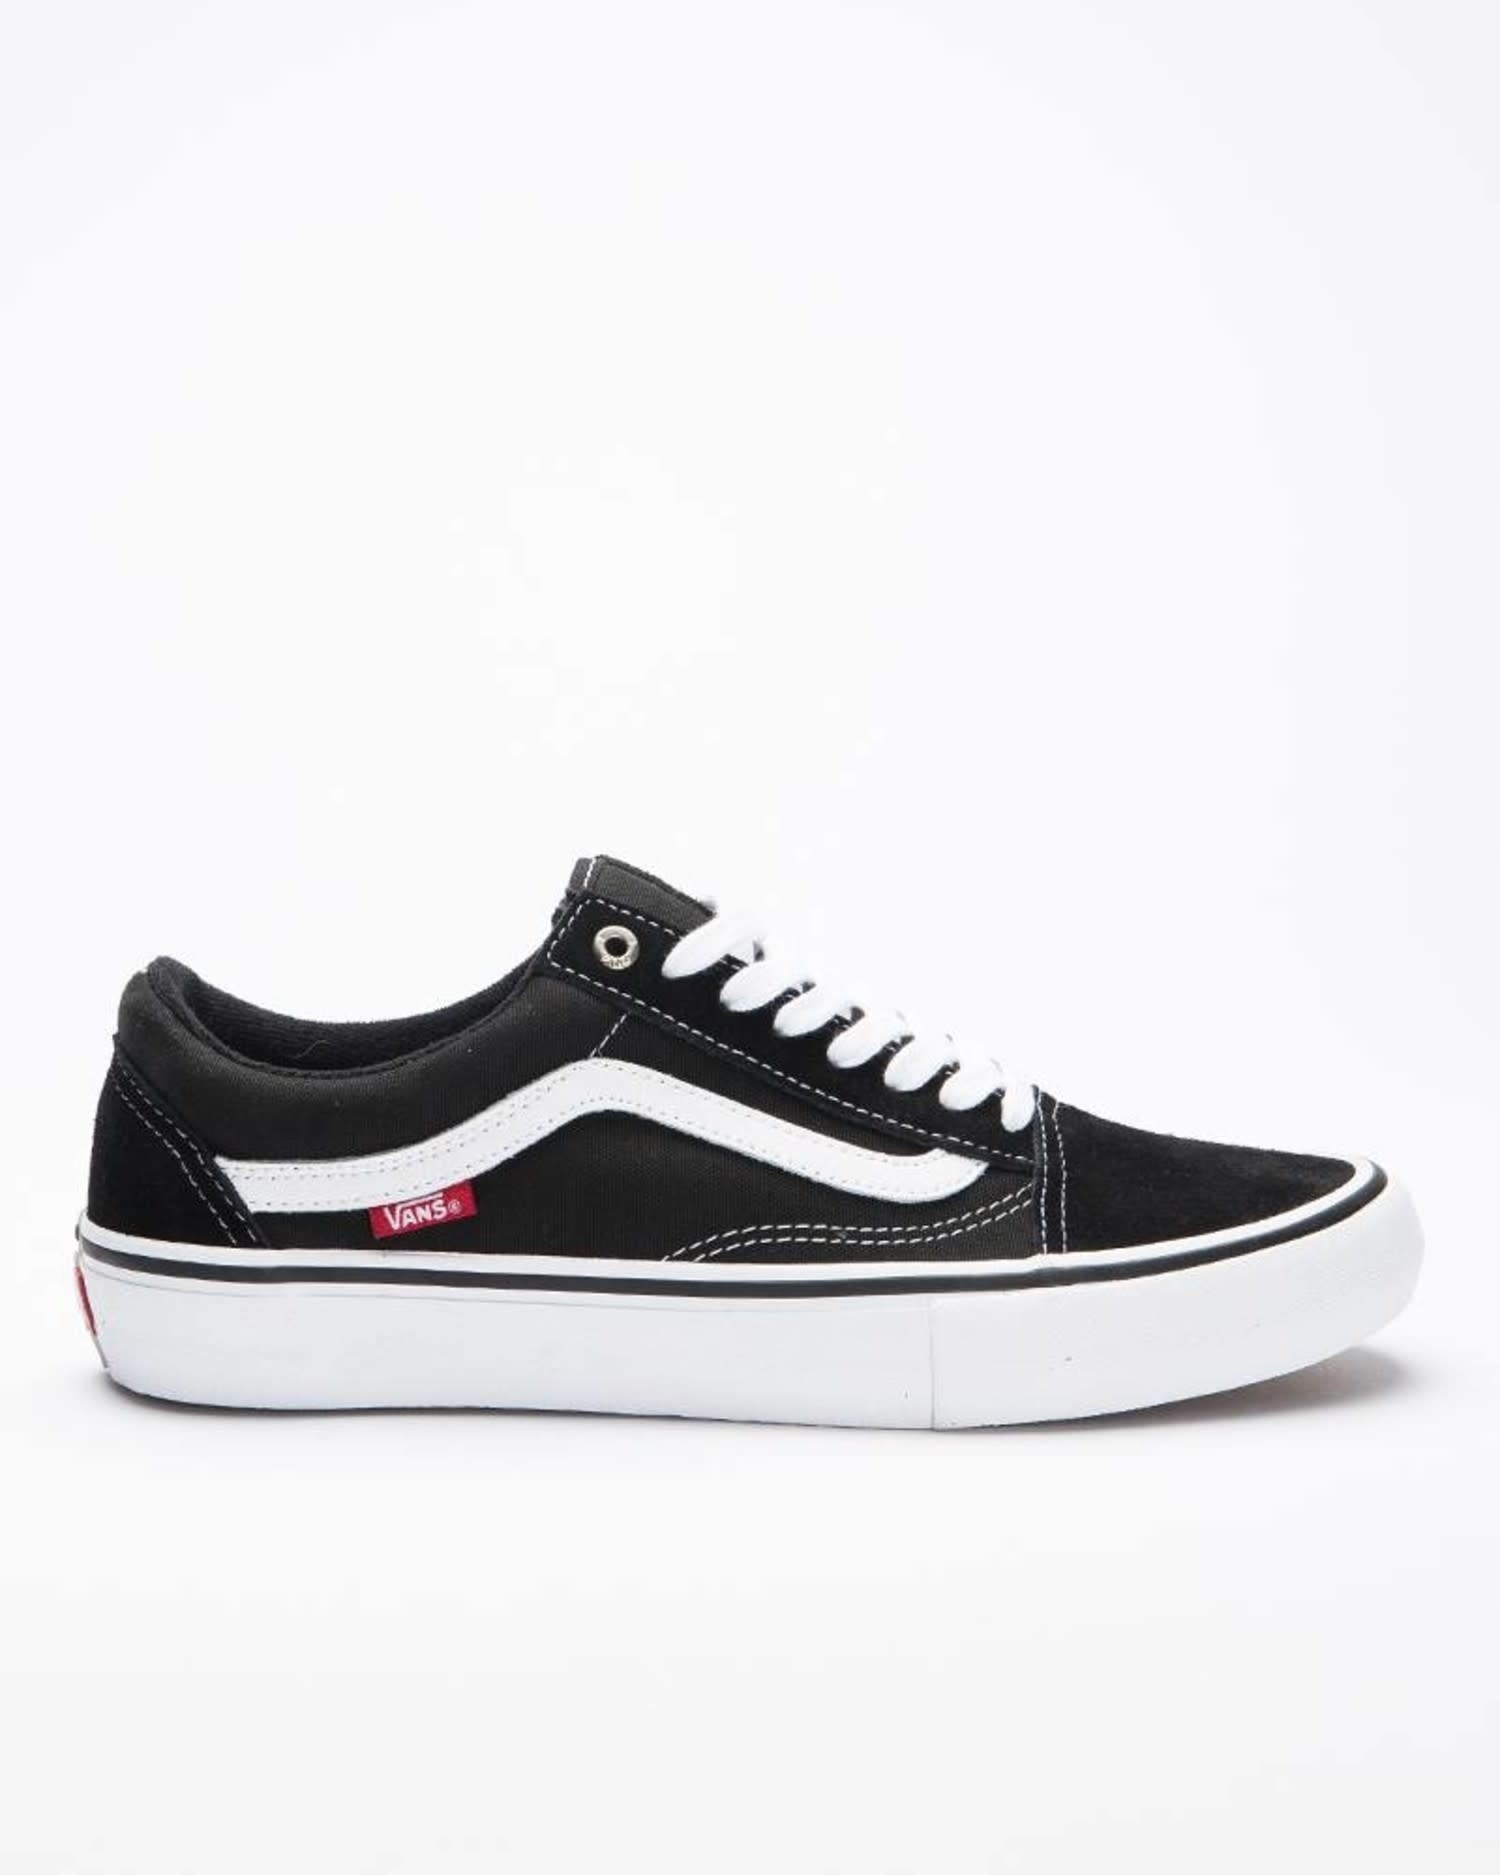 Vans mn old skool pro black/white